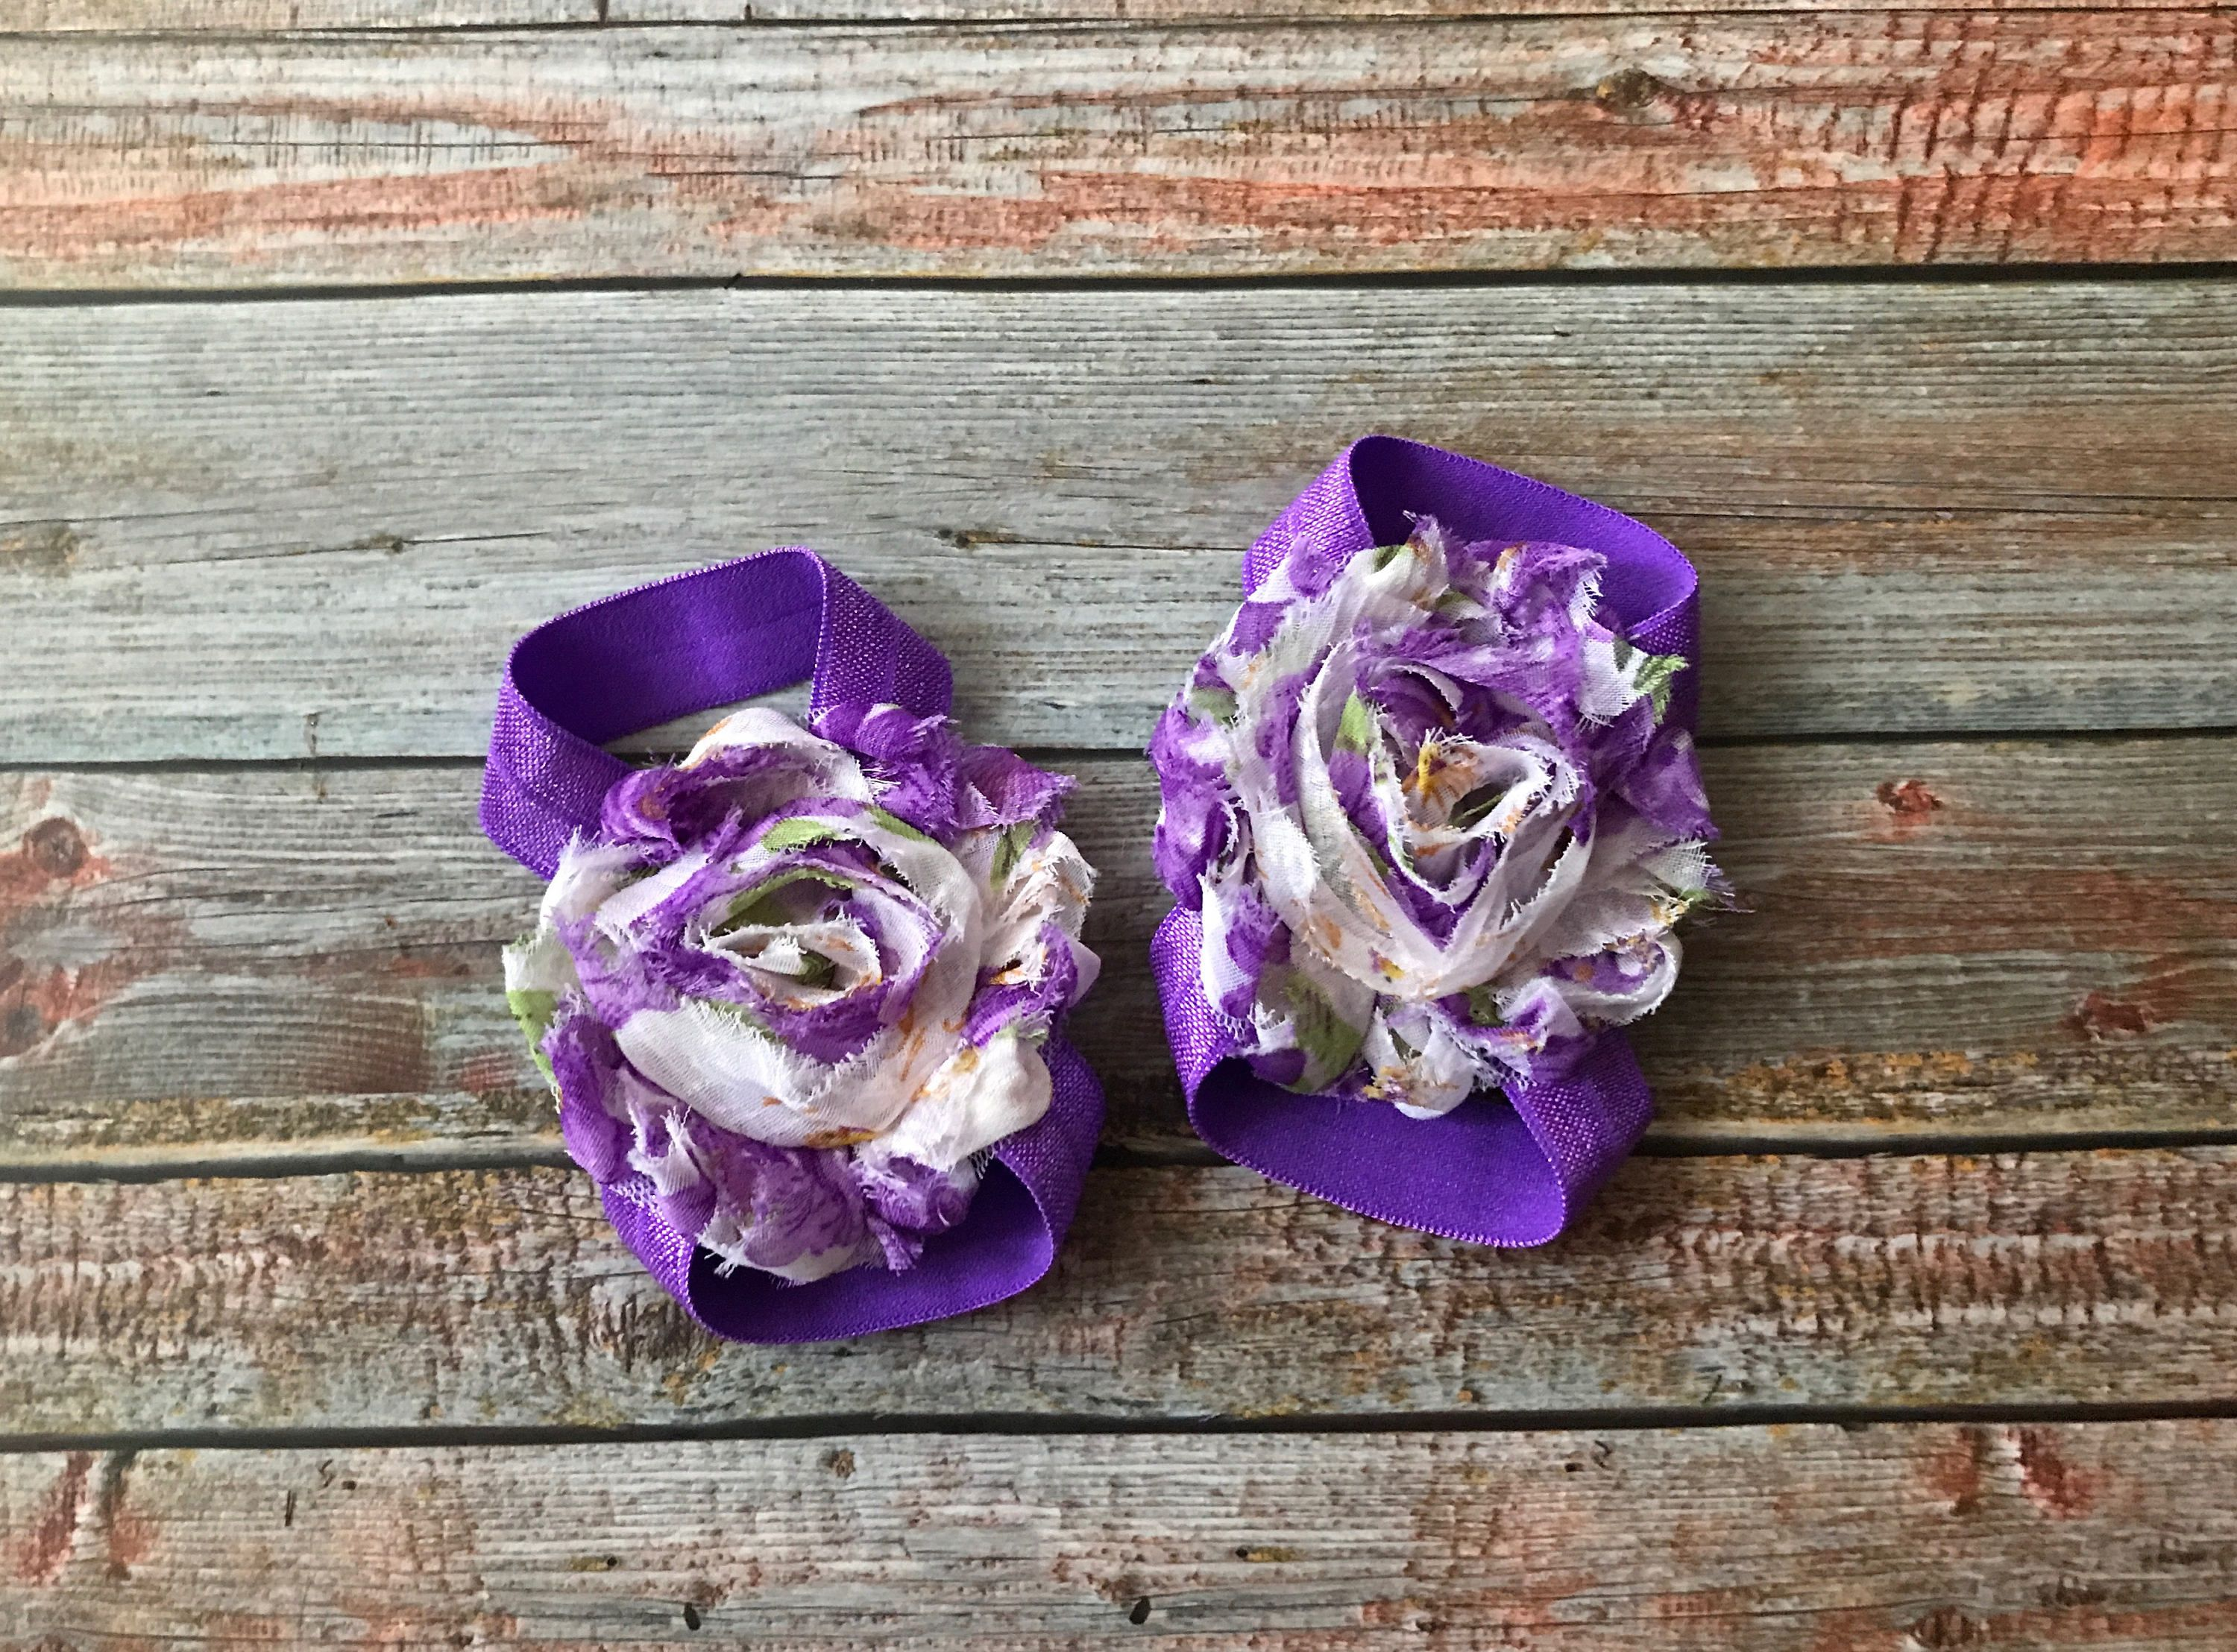 Purple Floral Barefoot Sandals/Baby Barefoot Sandals/Baby Girl Sandals/Baby Sandals/Baby Shoes/Elastic Sandals/Baby Girl/Newborn Sandals by JuliaGraceDesigns1 on Etsy